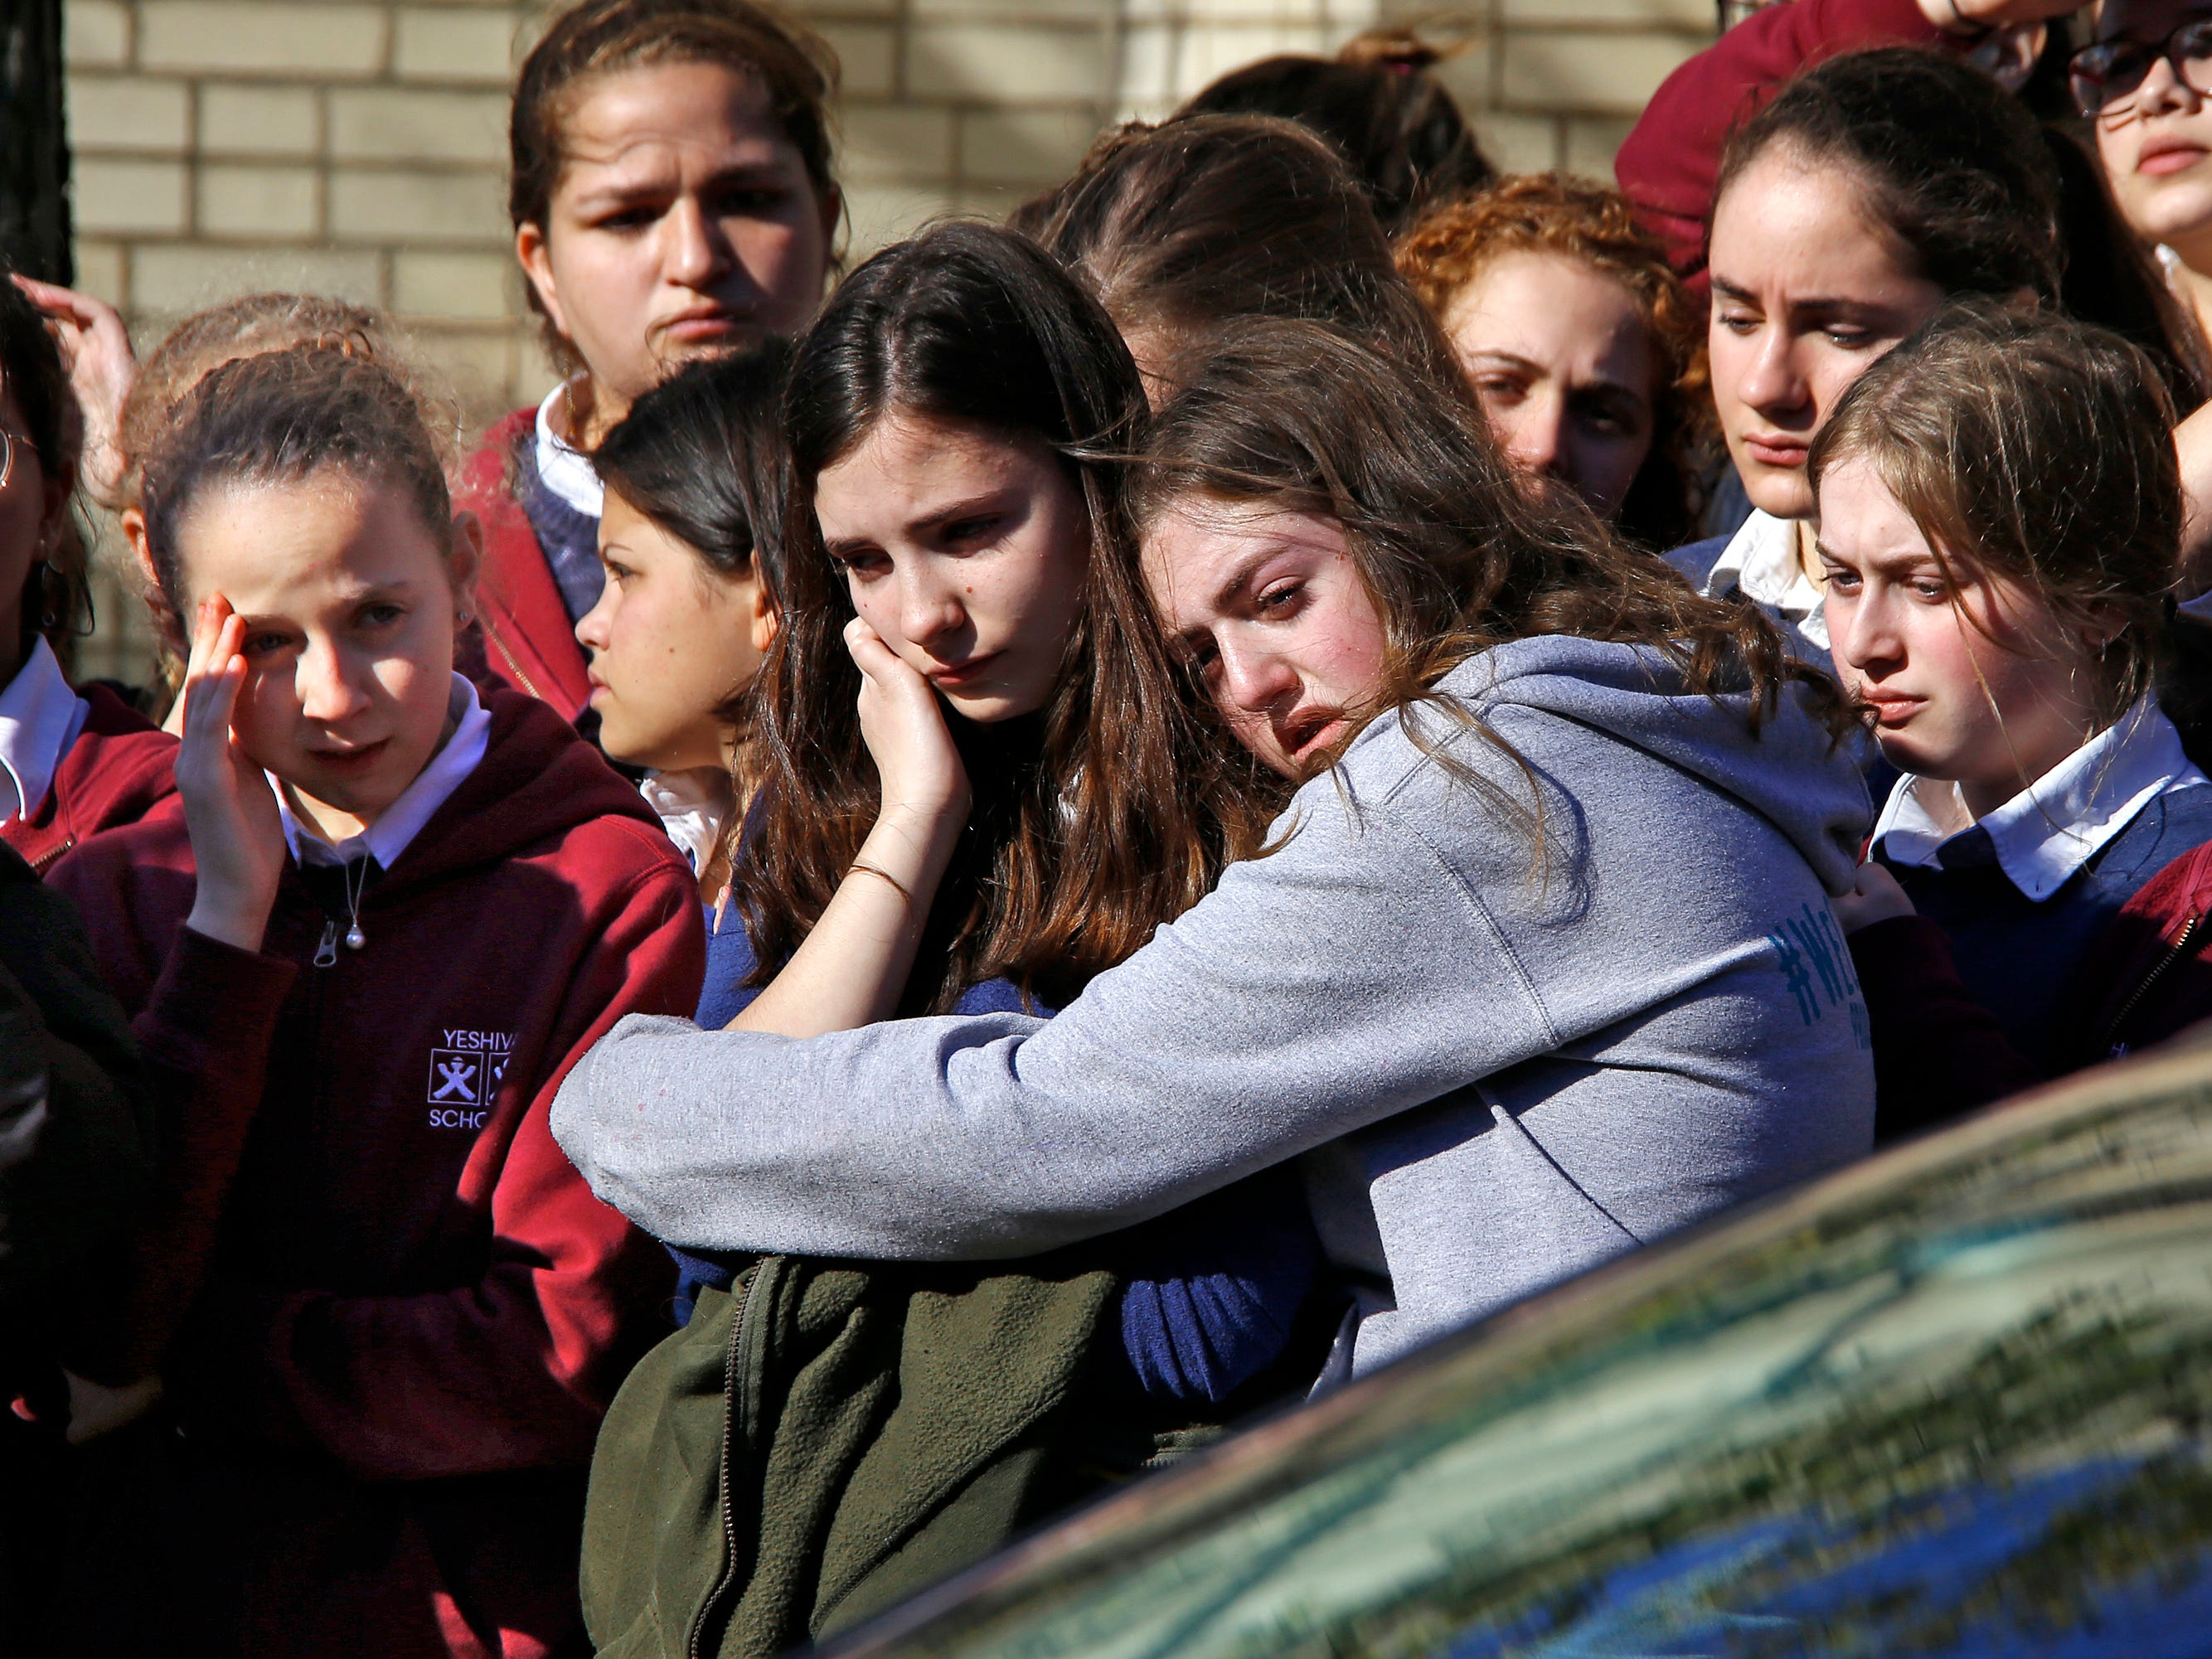 Students from the Yeshiva School in the Squirrel Hill neighborhood of Pittsburgh stand outside the Beth Shalom Synagogue after attending the funeral for Joyce Fienberg, Wednesday, Oct. 31, 2018. Fienberg, 75, Melvin Wax, 87, and Irving Younger, 69, were to be laid to rest as part of a week-long series of services for the 11 people killed in Saturday's shooting rampage at the Tree of Life synagogue.